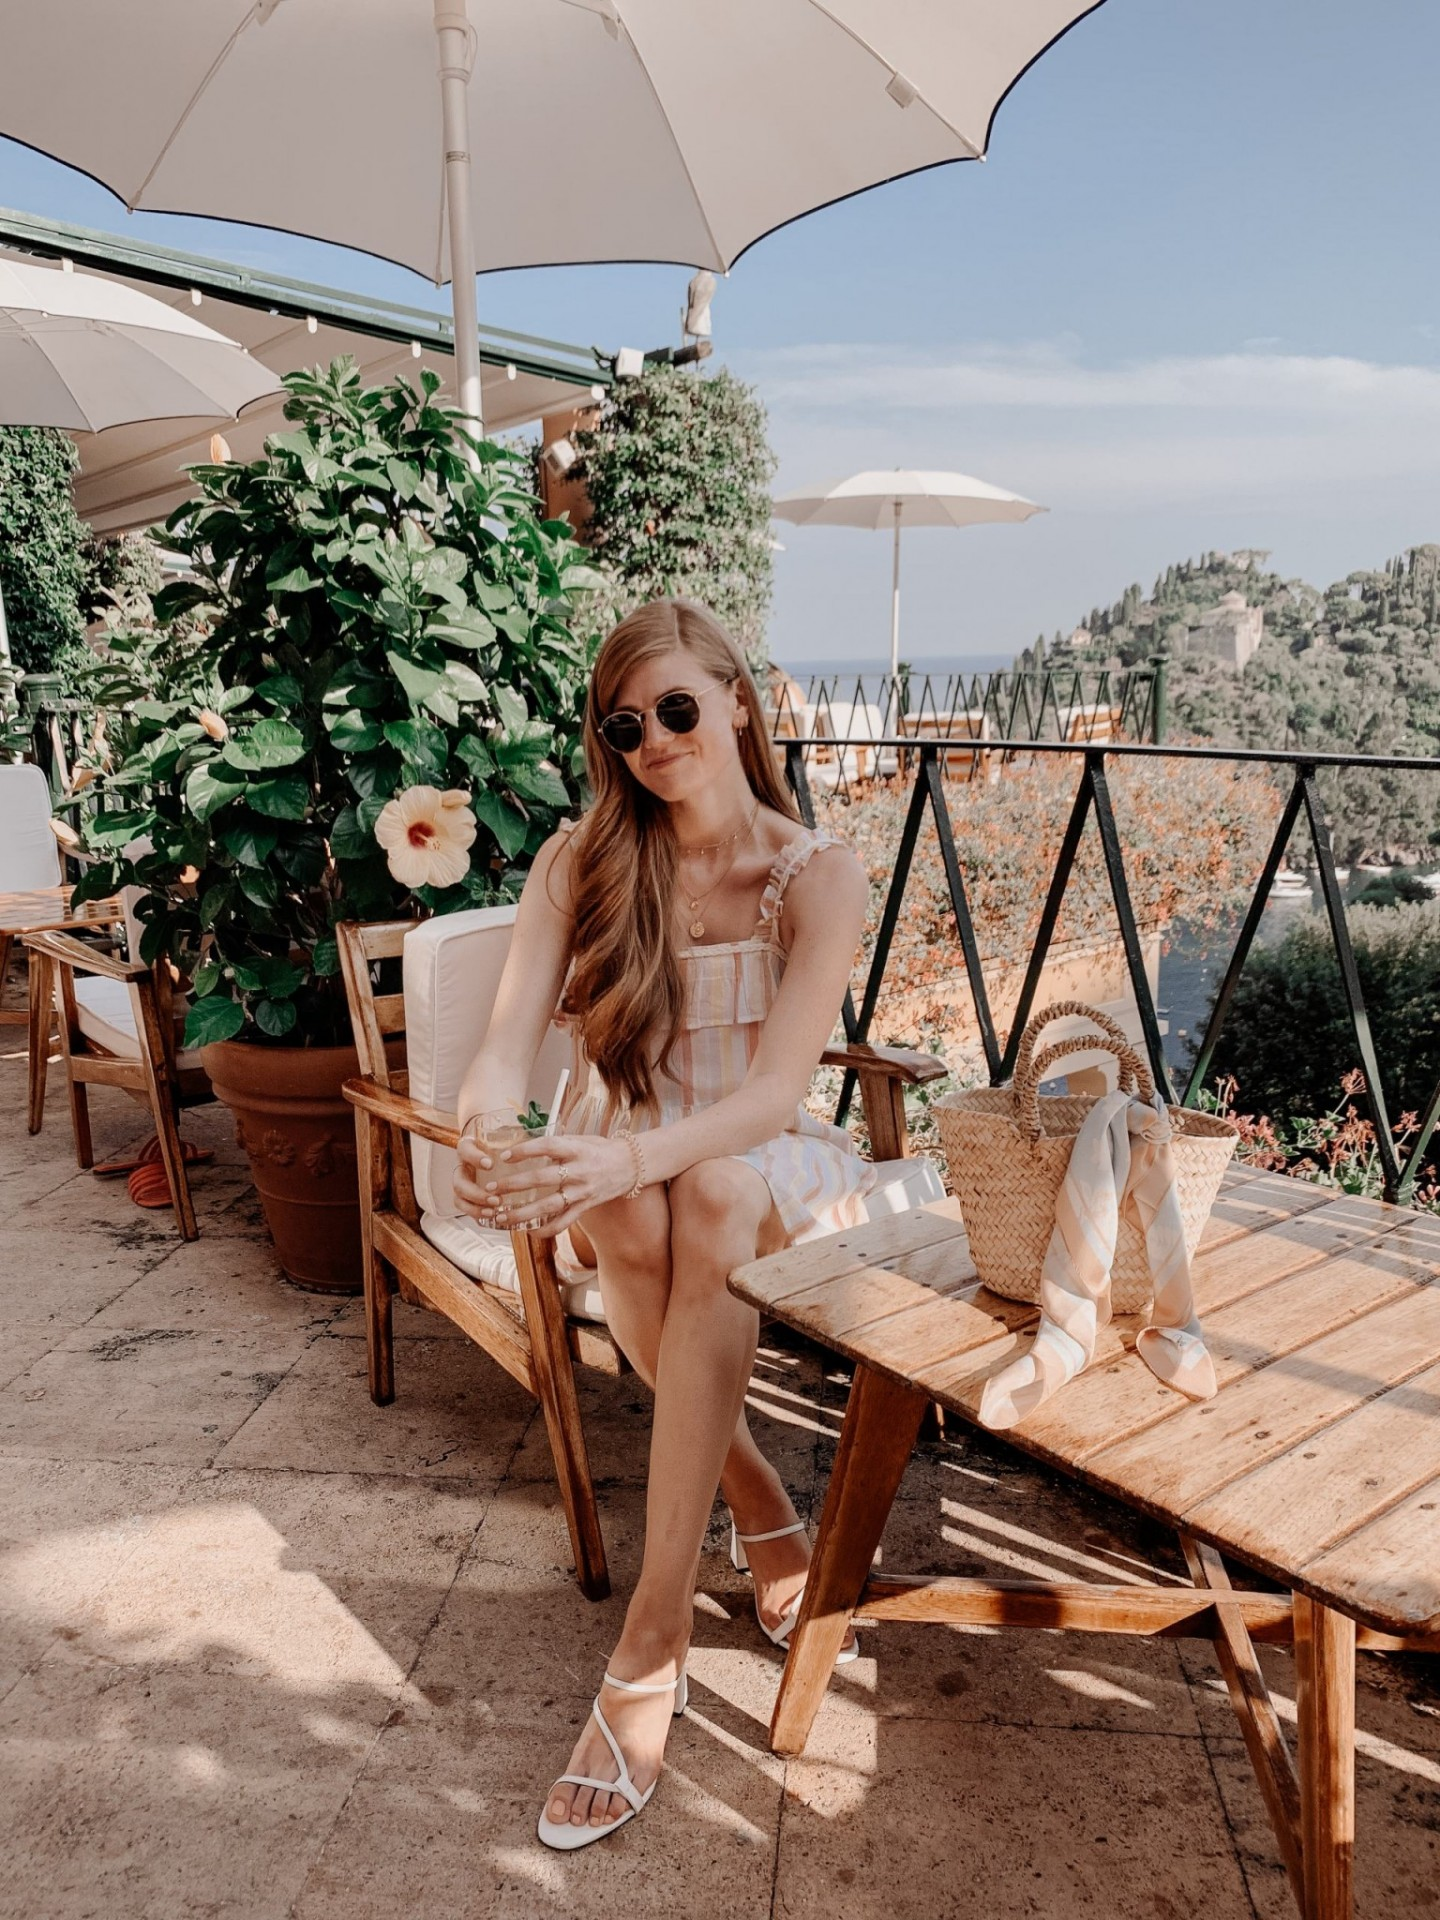 Lifestyle blogger Mollie Moore shares a Portofino Travel Guide | Travel Guide: Best Things to do in Portofino Italy by popular international travel blogger, Mollie Moore: image of a woman sitting outside in Portofino Italy.